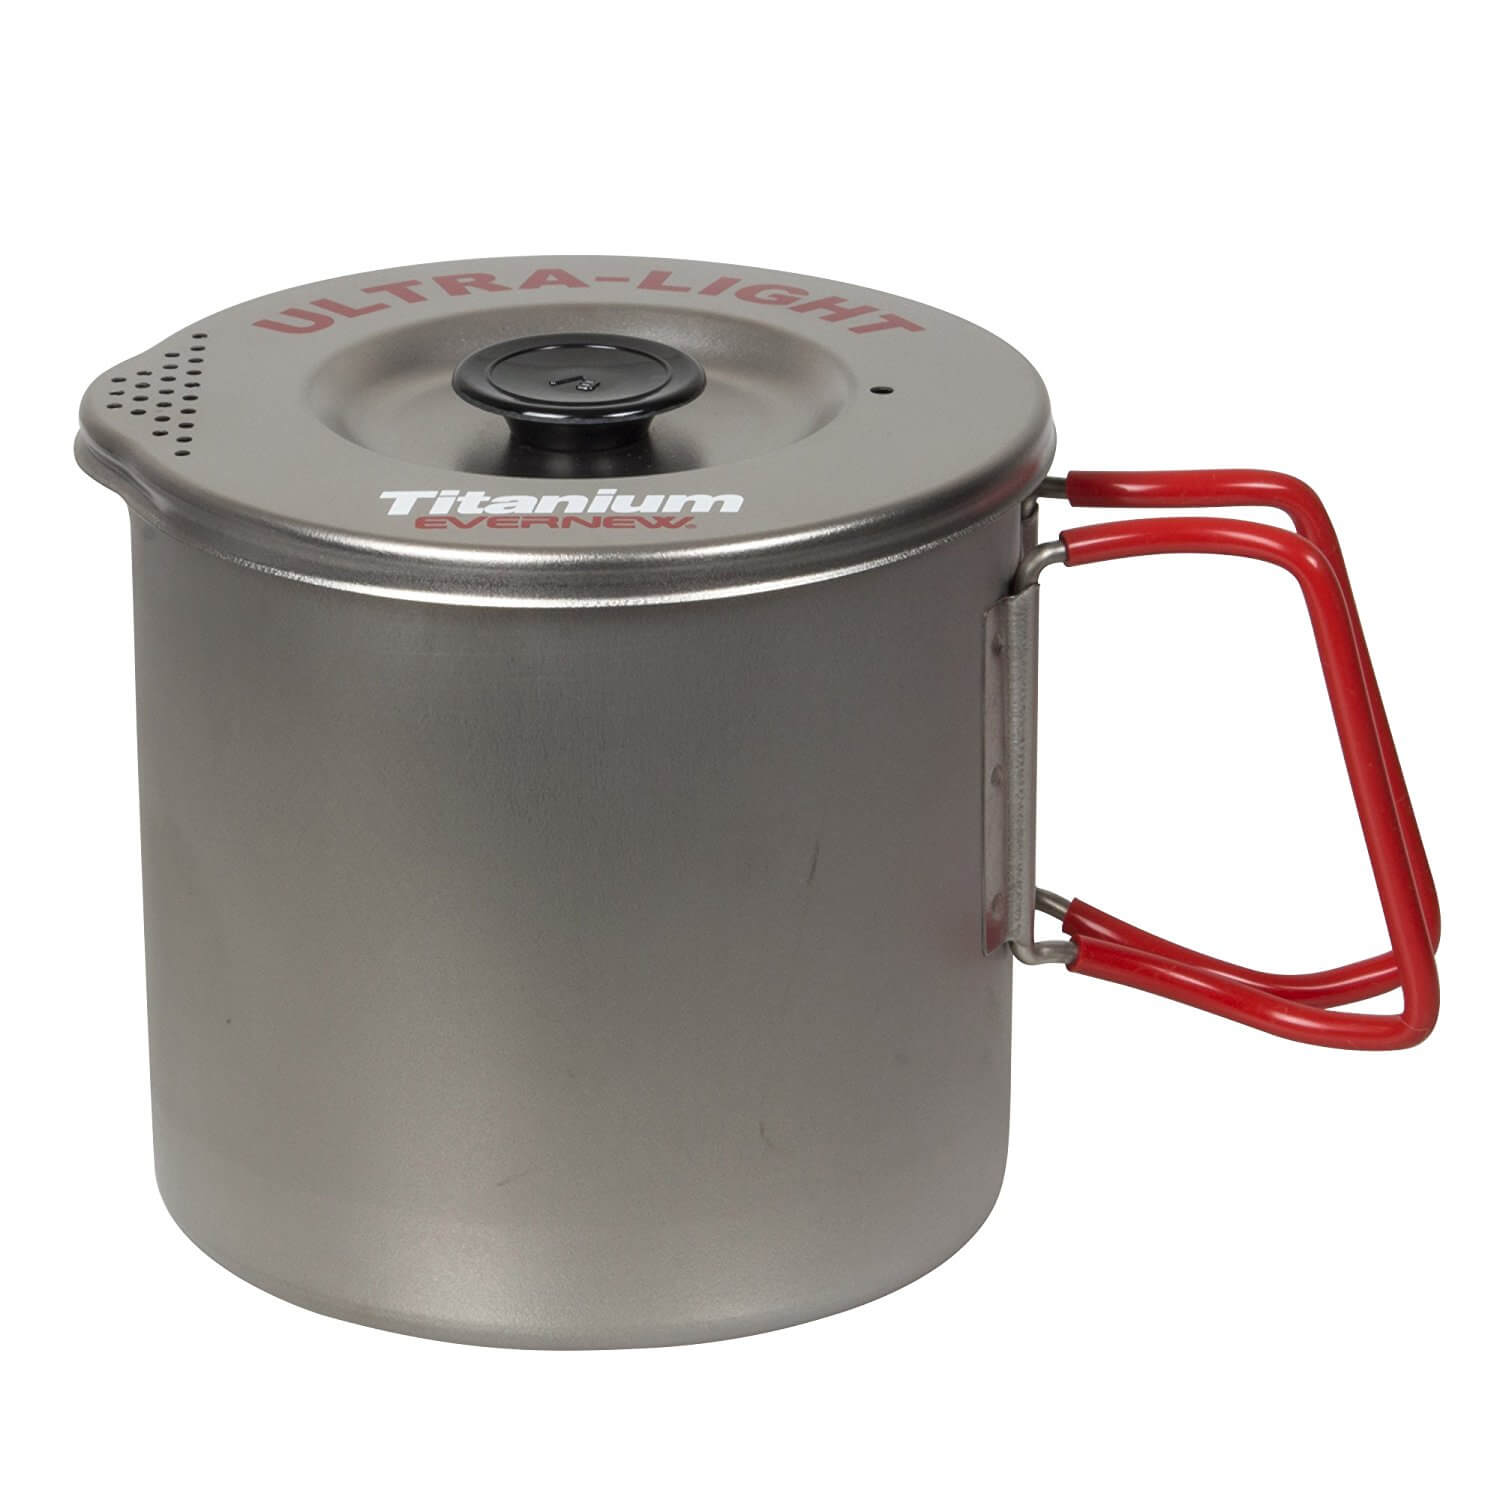 Evernew Titanium Pasta Pot